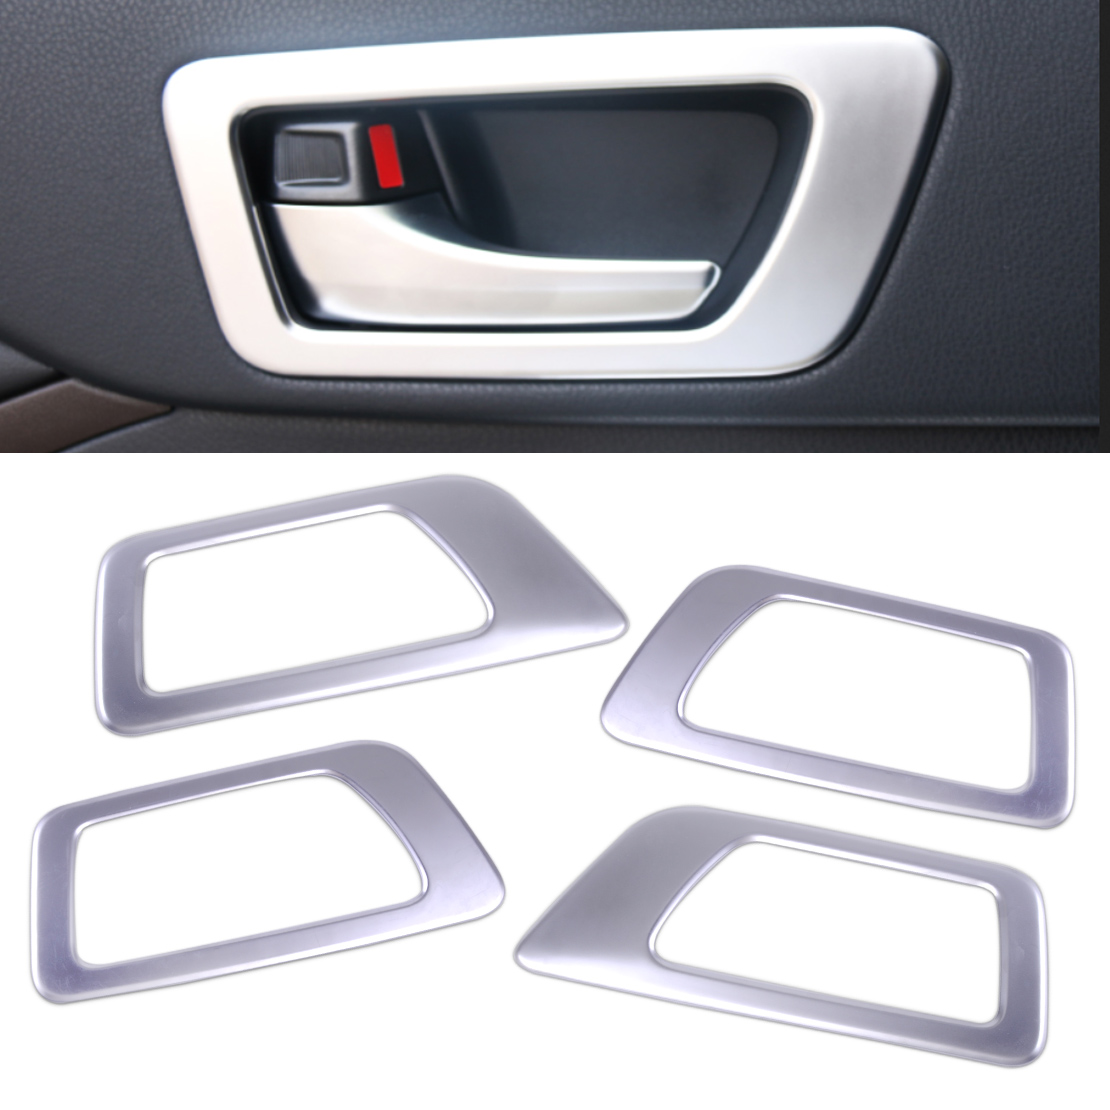 DWCX 4Pcs Car Styling Cool ABS Chrome Left + Right Inner Handle Bowl Trim Decoration fit for Toyota Highlander 2015 2016 2017